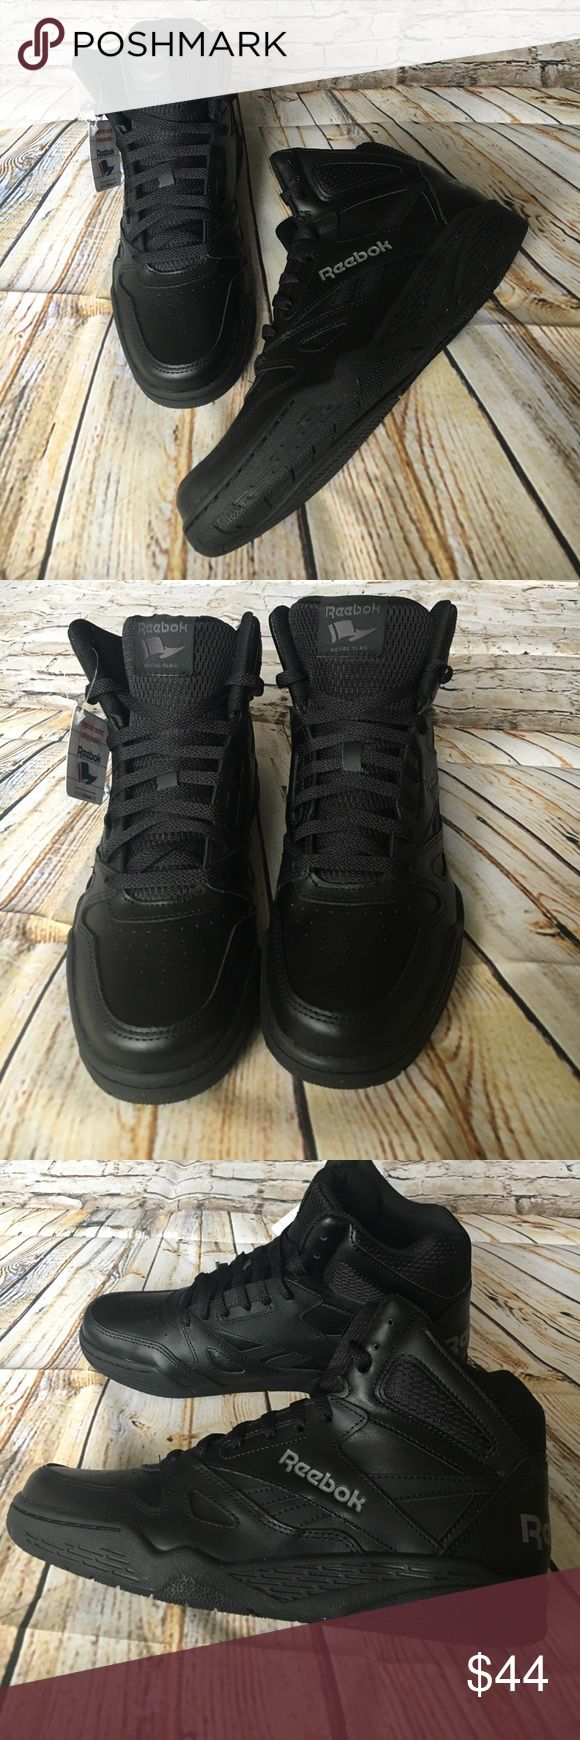 Reebok Royal Flag Classic Black Size 9 Get the perfect Father's Day gift for that special man! These are the Classic Royal flag high top Reebok Royal Foam Lite with Ortholite. New in box. Reebok Shoes Sneakers